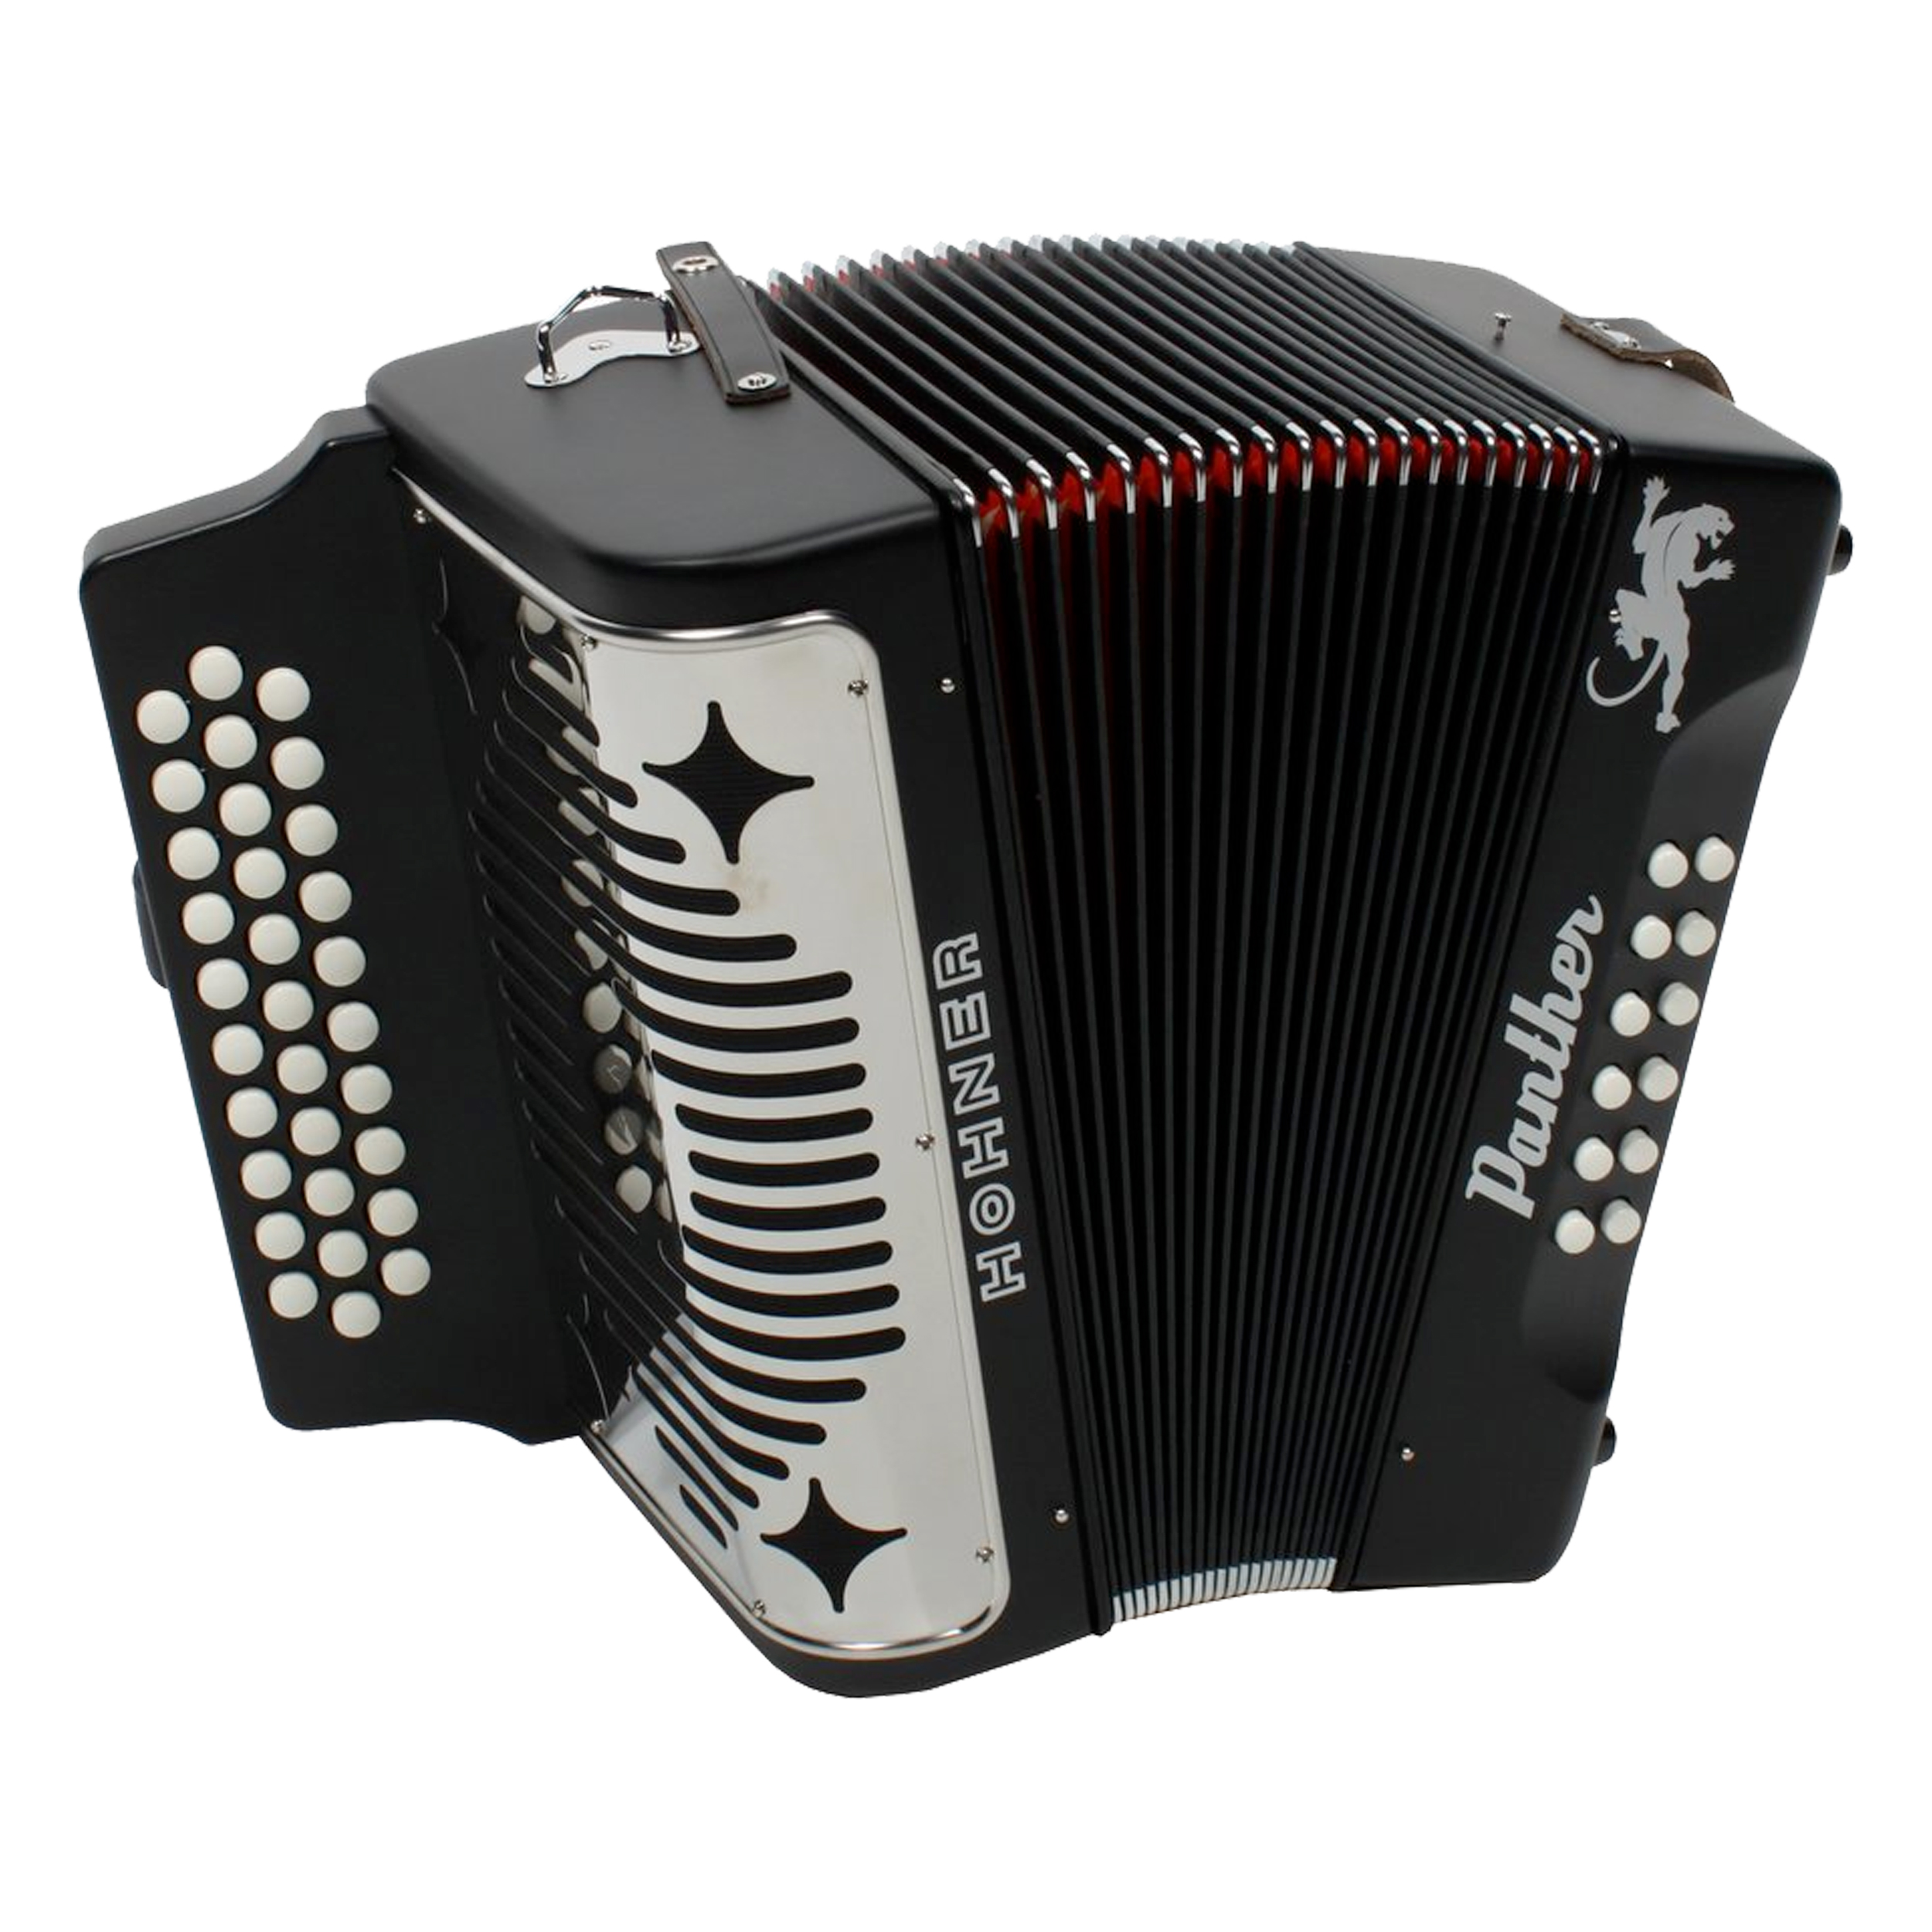 Hohner Panther Accordion 31 Treble Keys 12 Bass